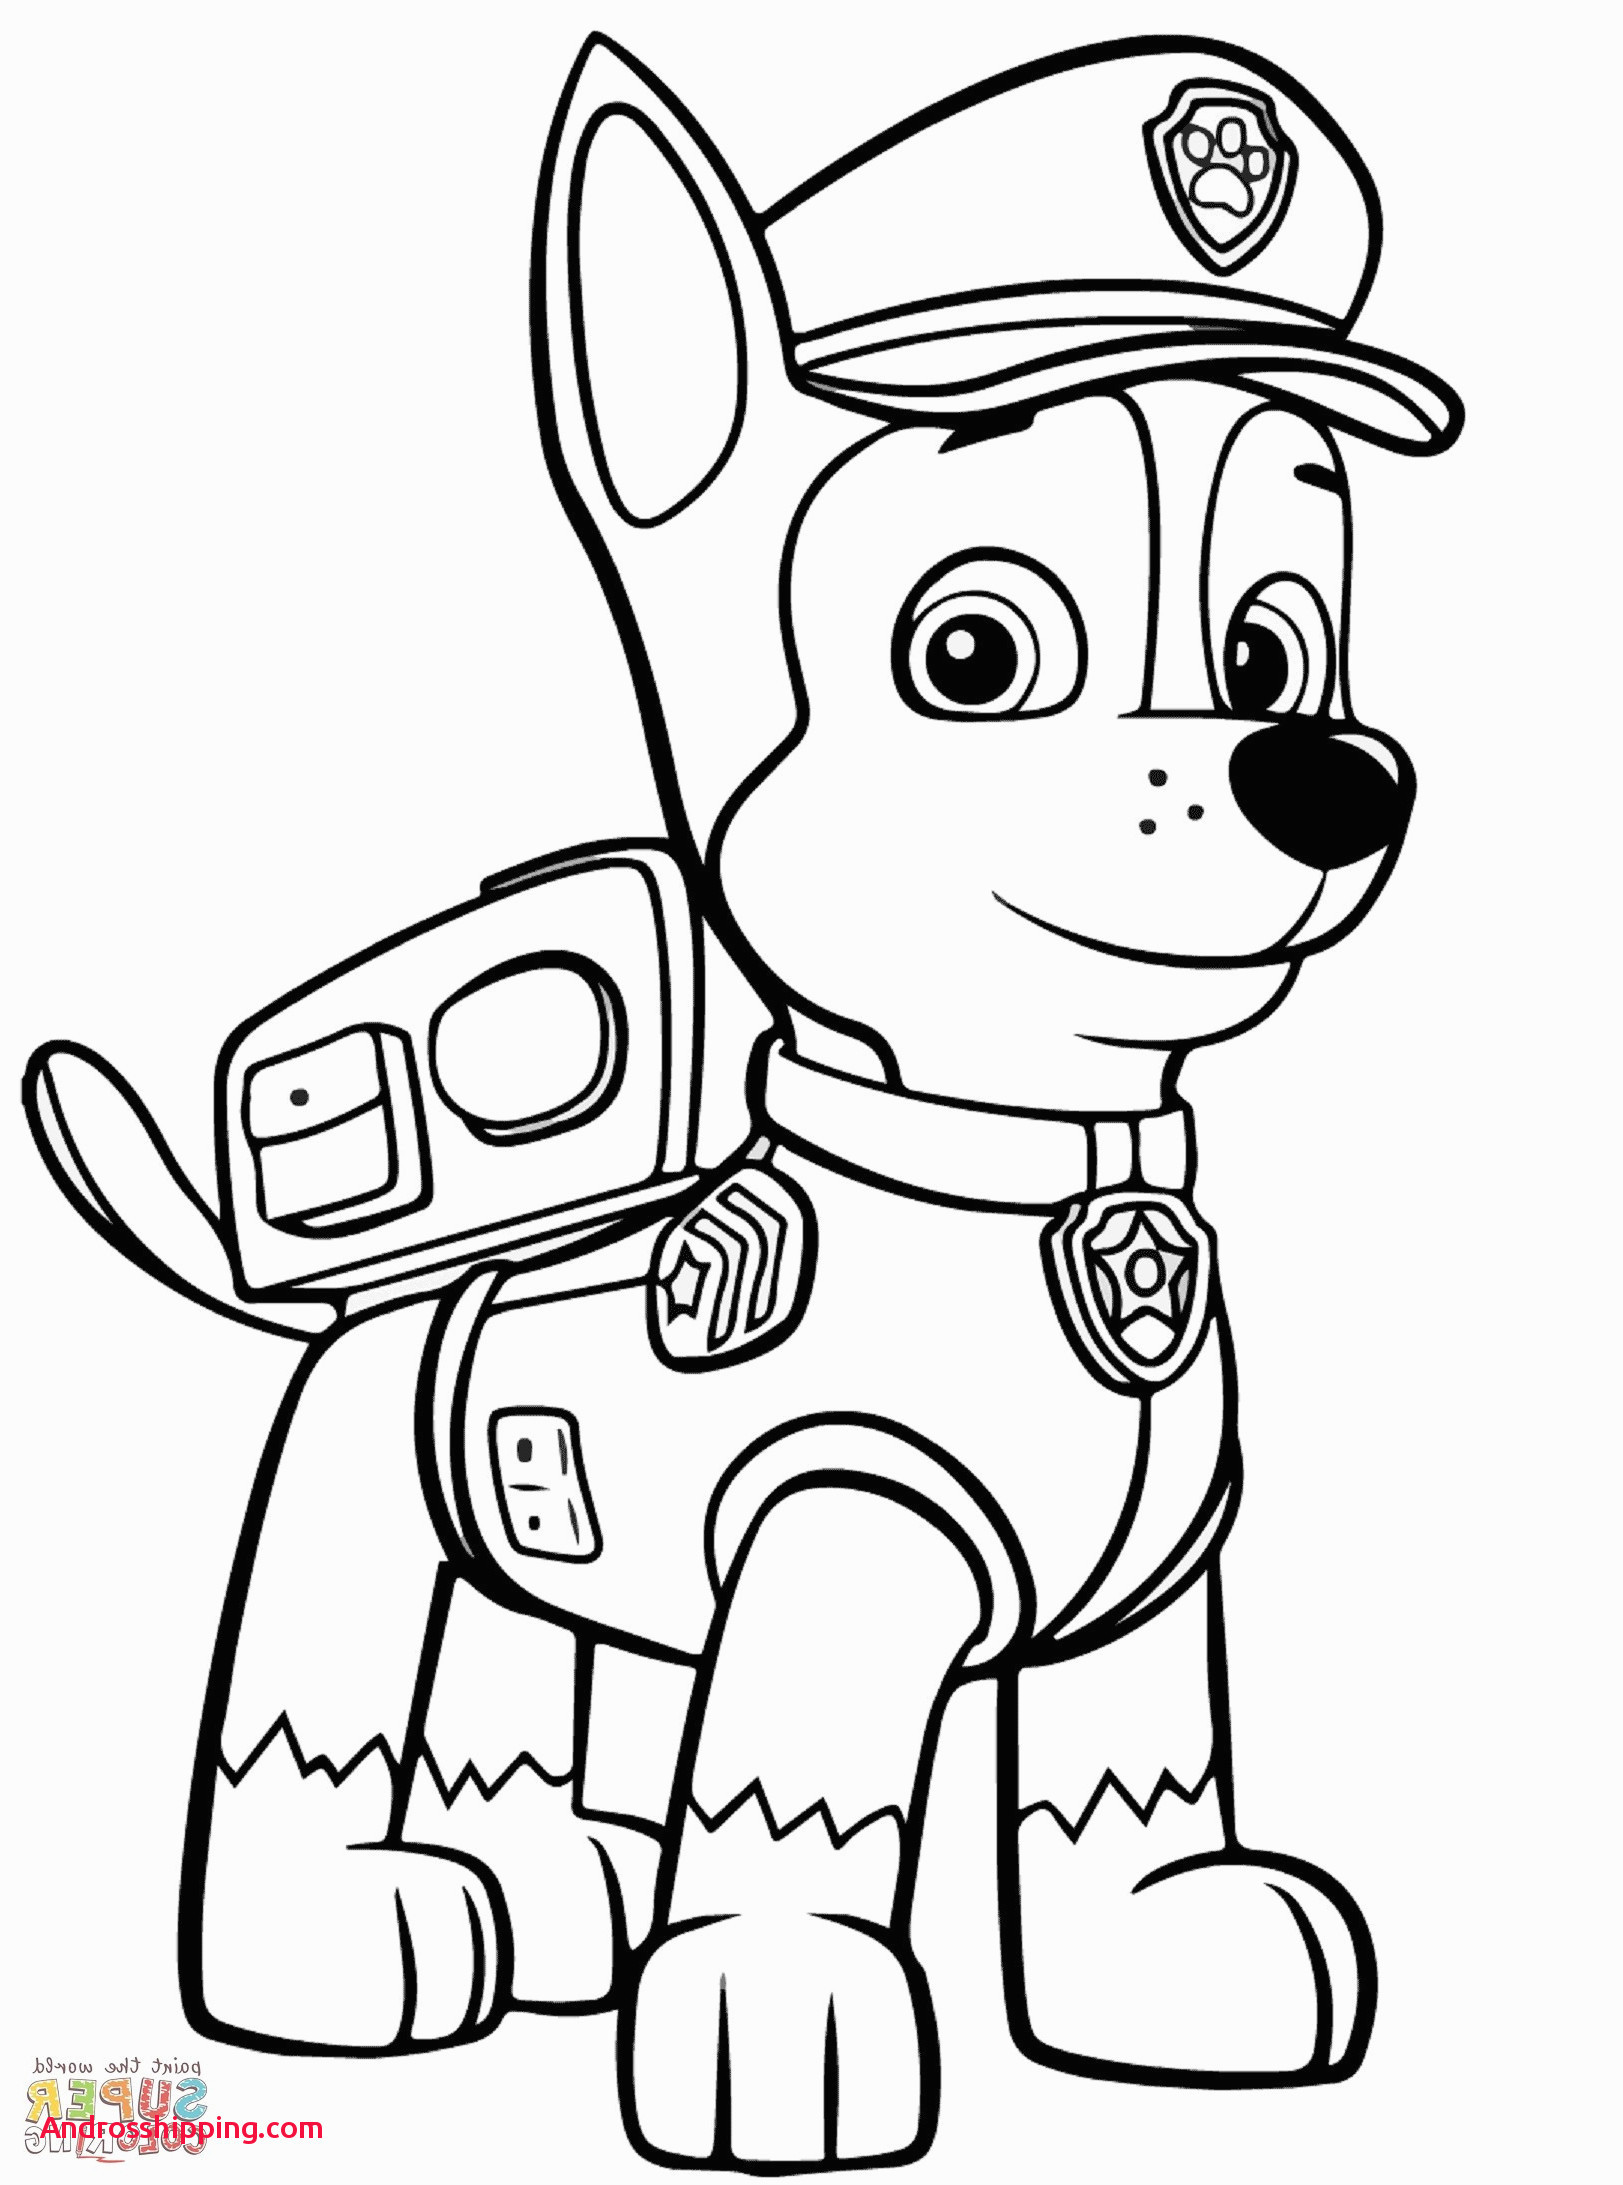 Paw Patrol Rocky Ausmalbilder Neu 10 Awesome Coloring Pages Zuma From Paw Patrol androsshipping Genial Bild